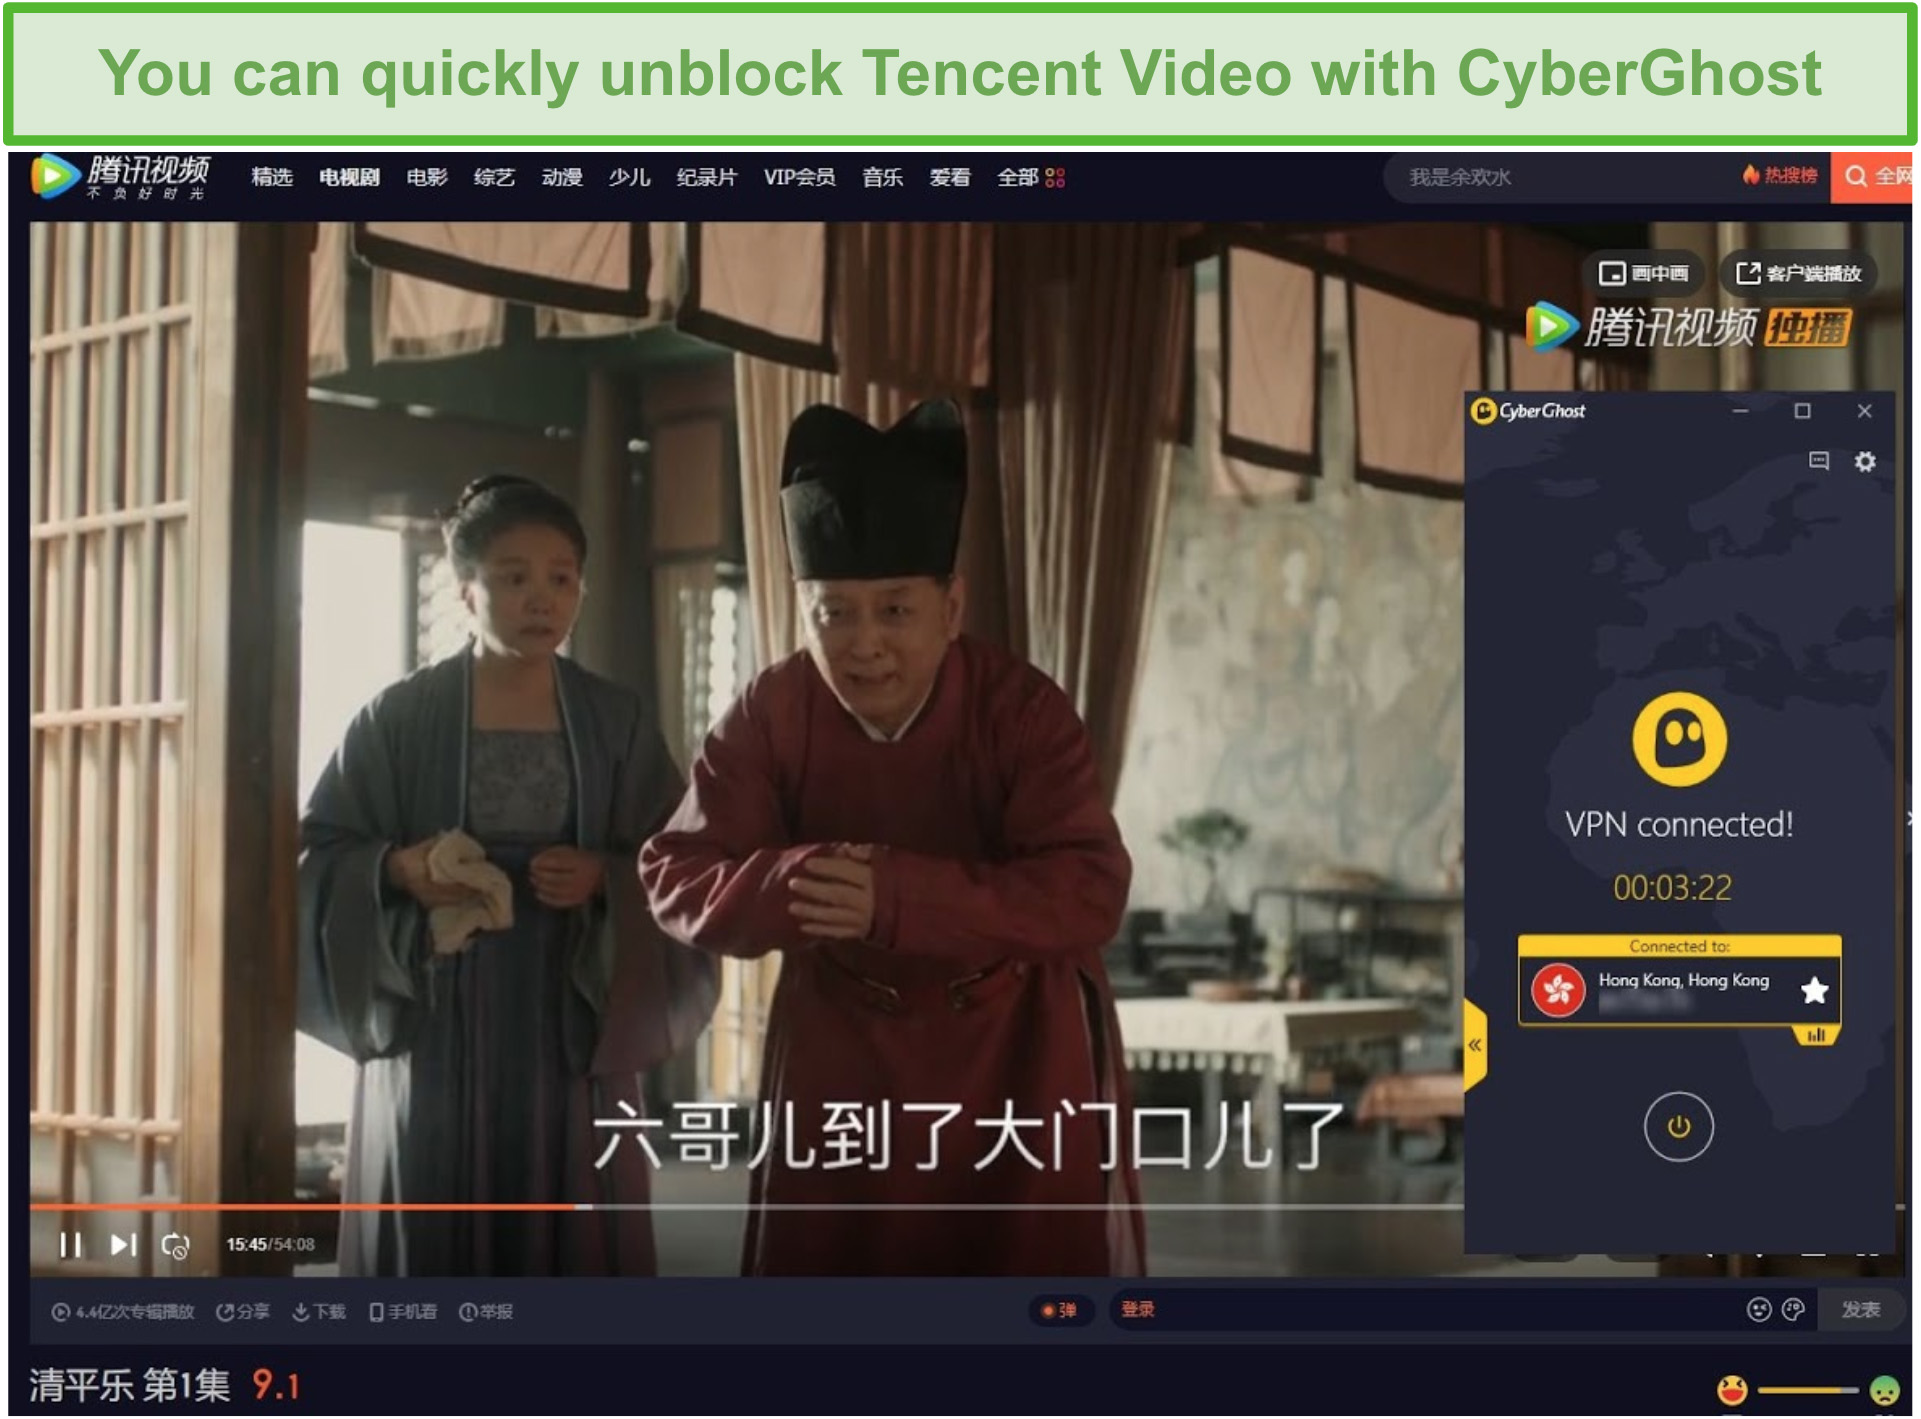 Screenshot of CyberGhost unblocking Tencent Video with a Hong Kong server.